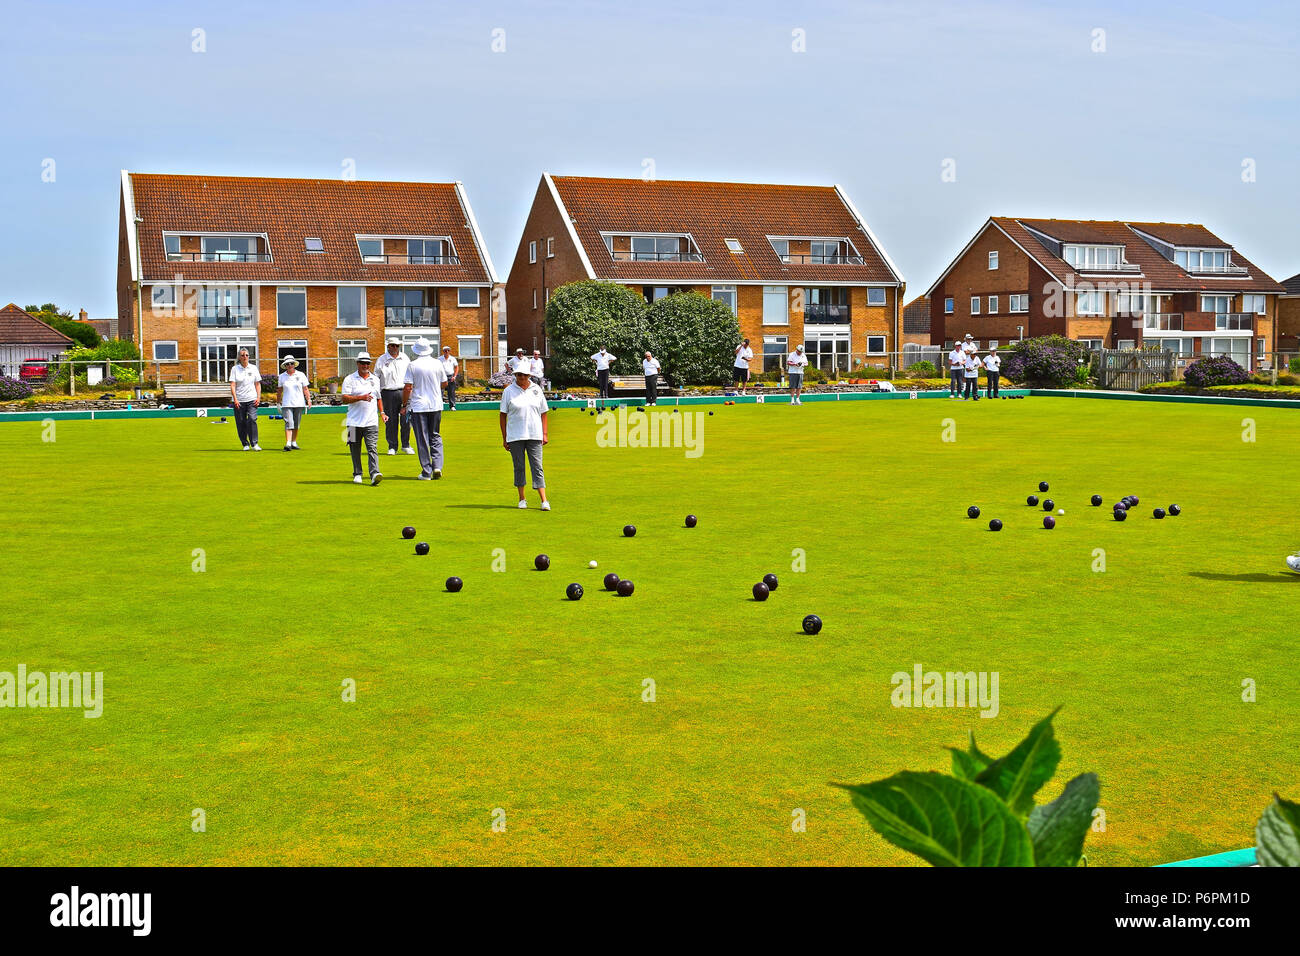 Players enjoying a quiet game of bowls at Milford on Sea Bowls Club in the Summer sunshine. Hampshire - Stock Image